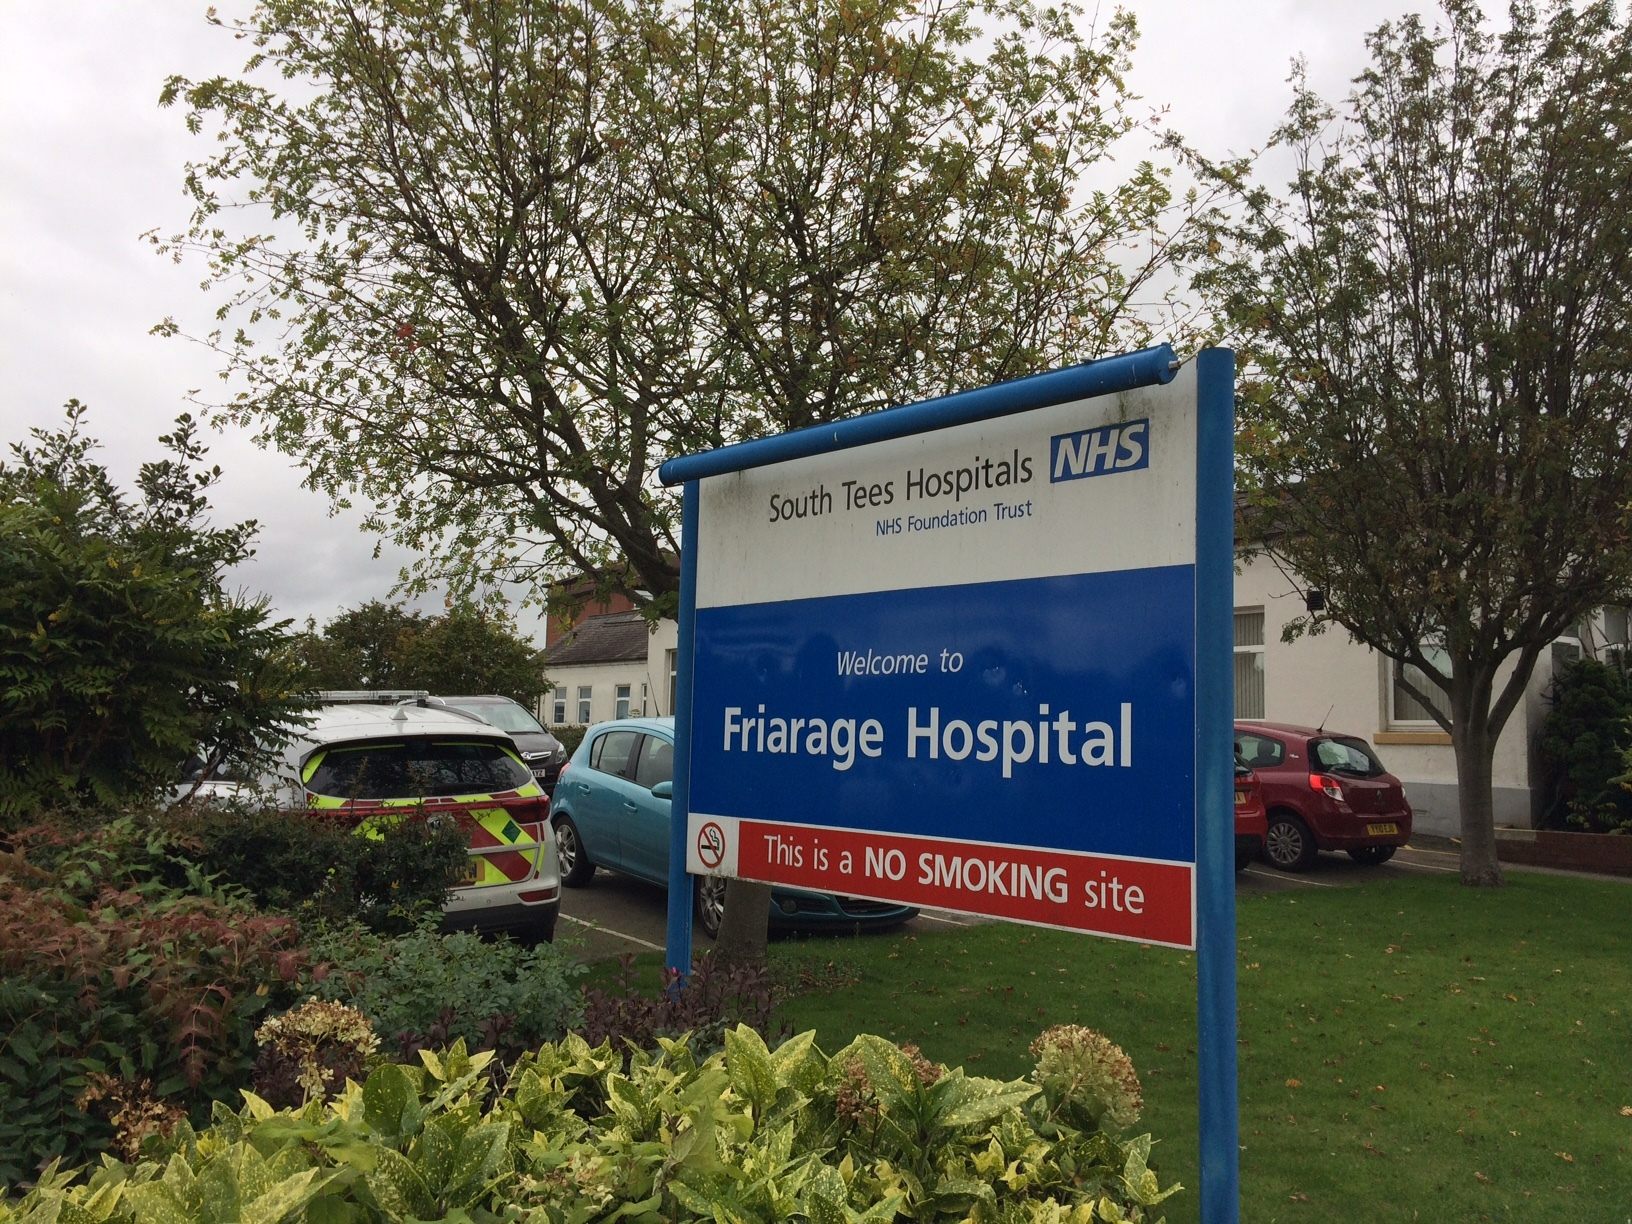 The Friarage Hospital Northallerton